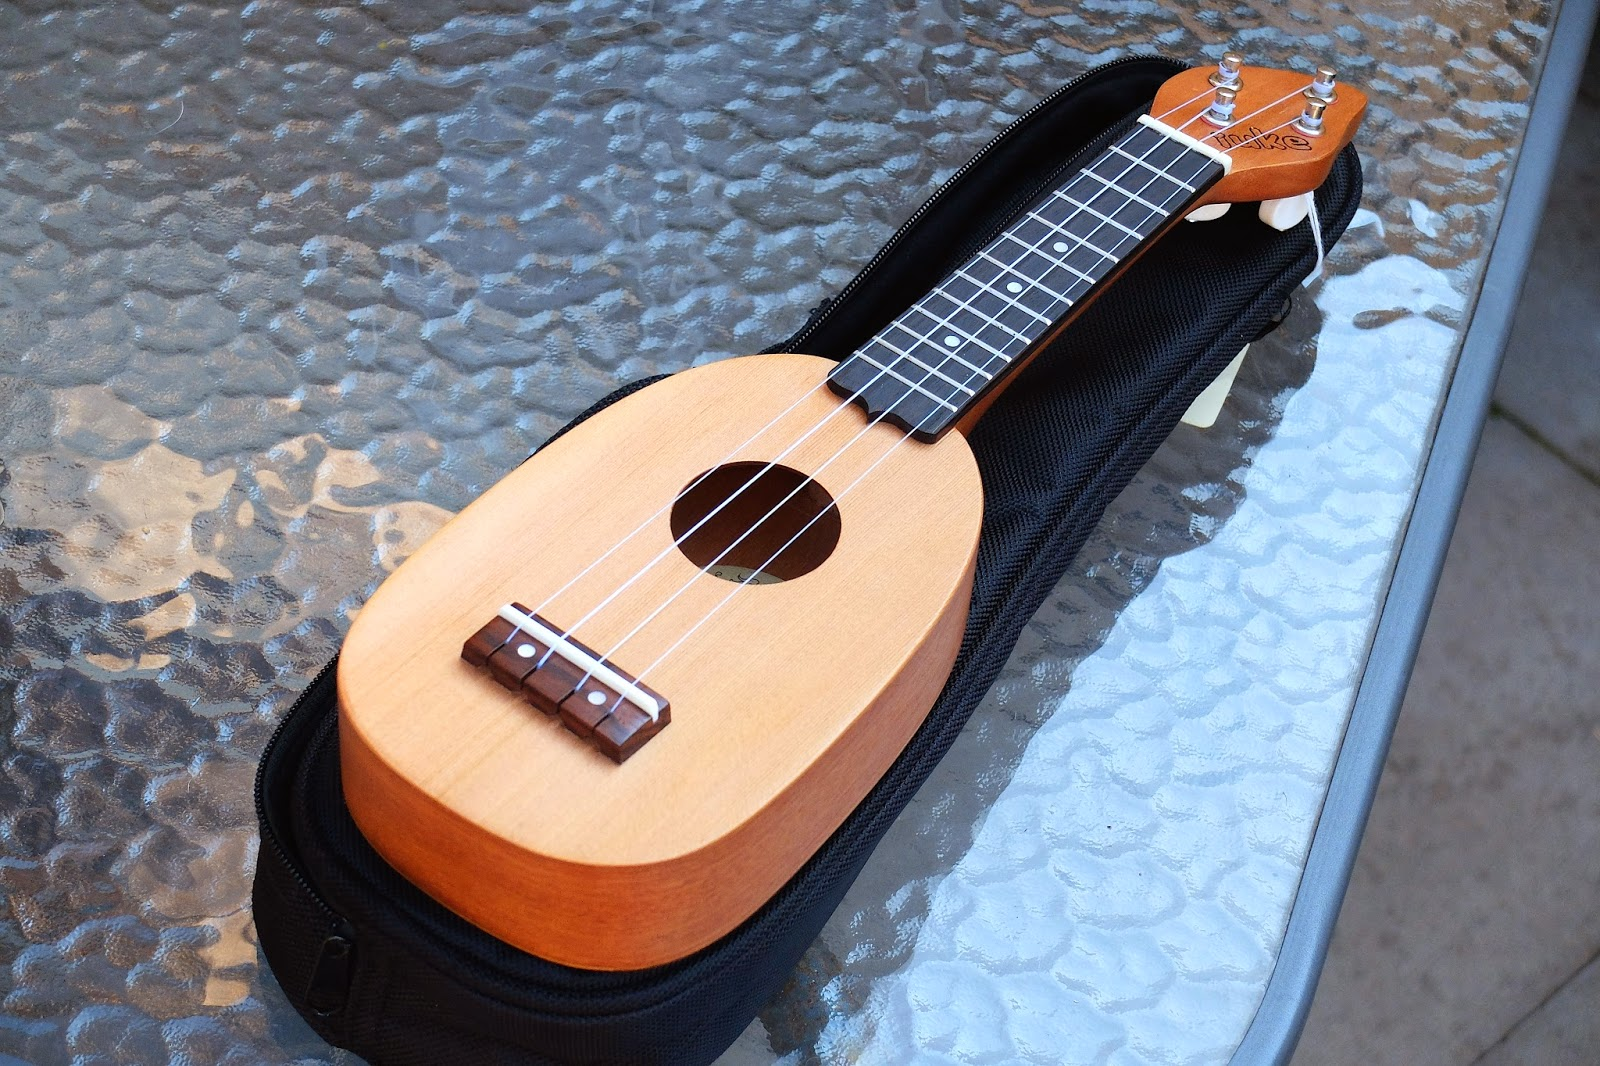 iUke Piccolo Mini Ukulele